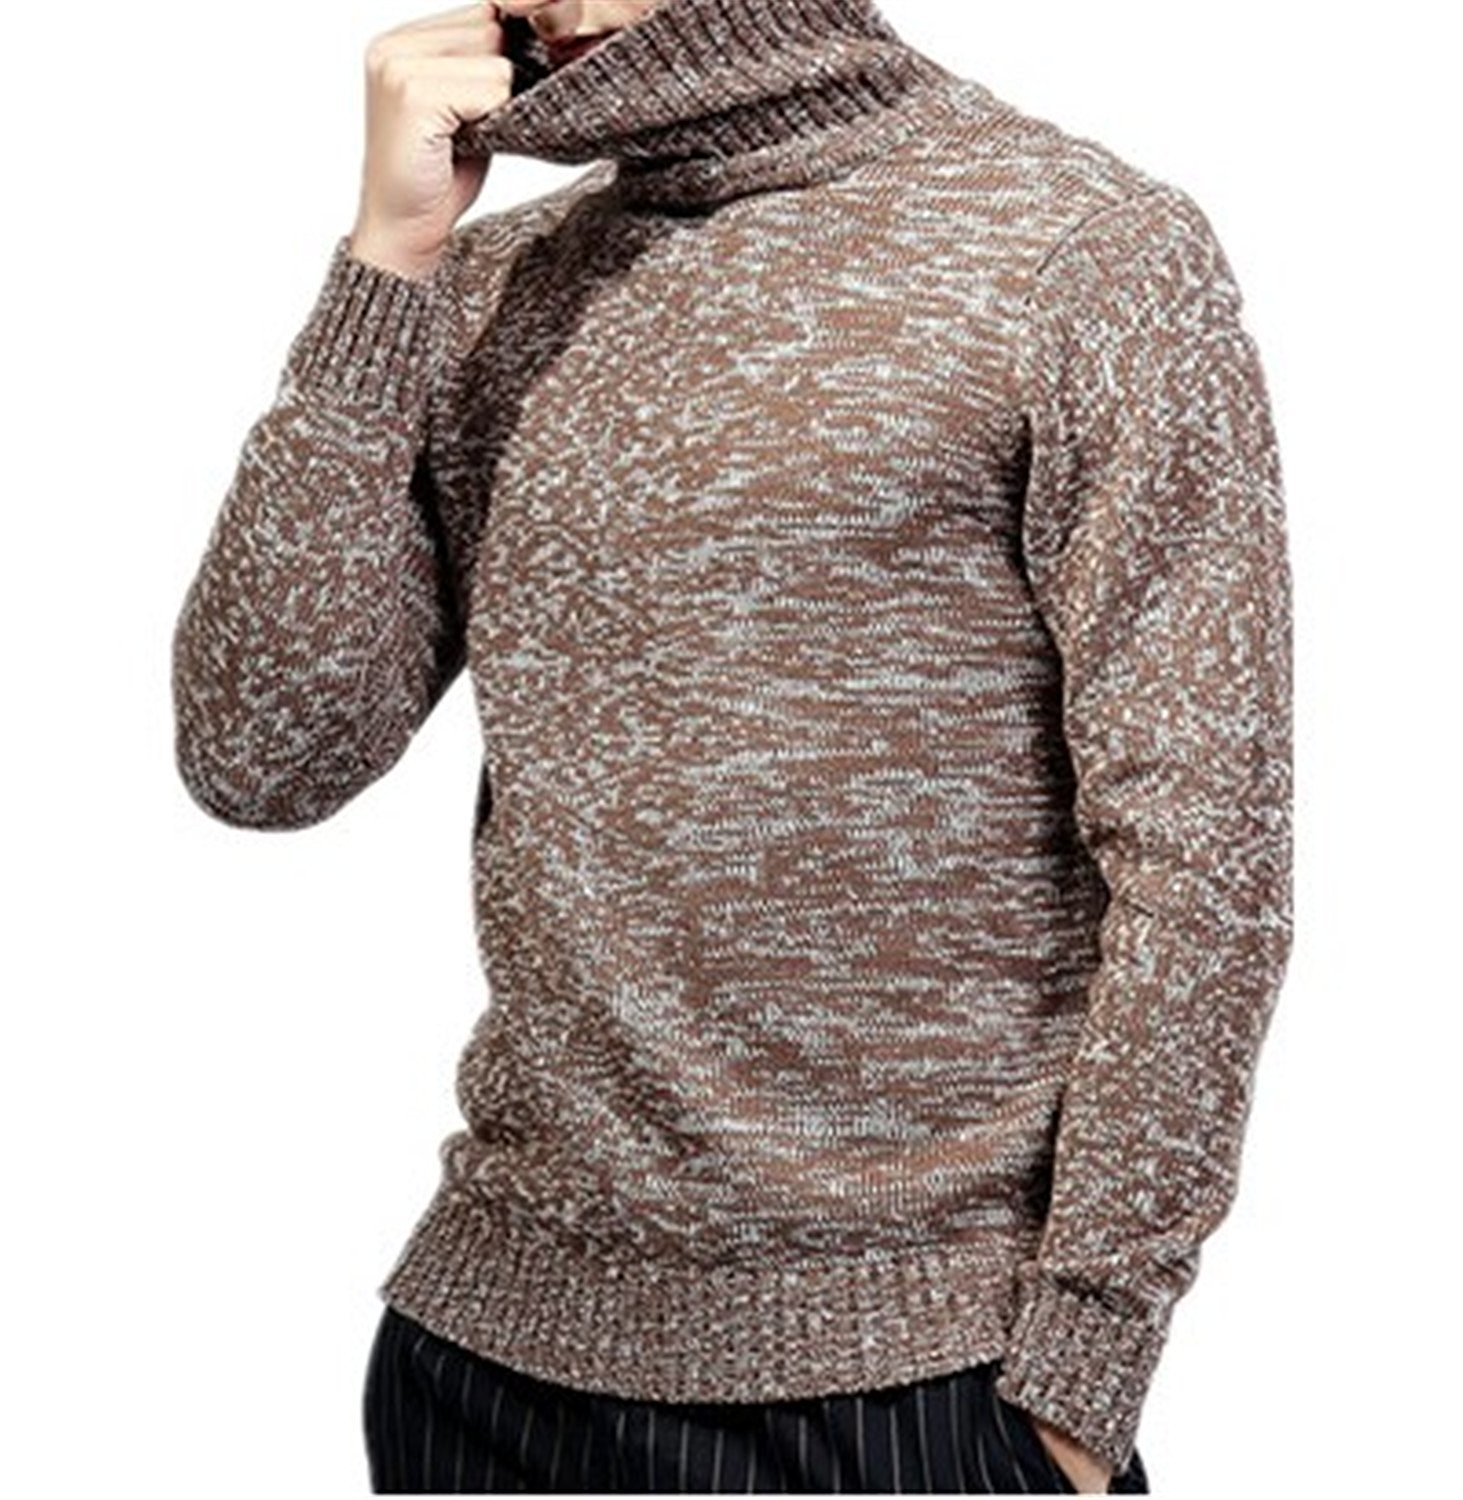 LOKOUO cotton winter knitted sweater knitshirt Men's turtleneck pullover sweater sueter hombre jaqueta masculino BrownX-Large